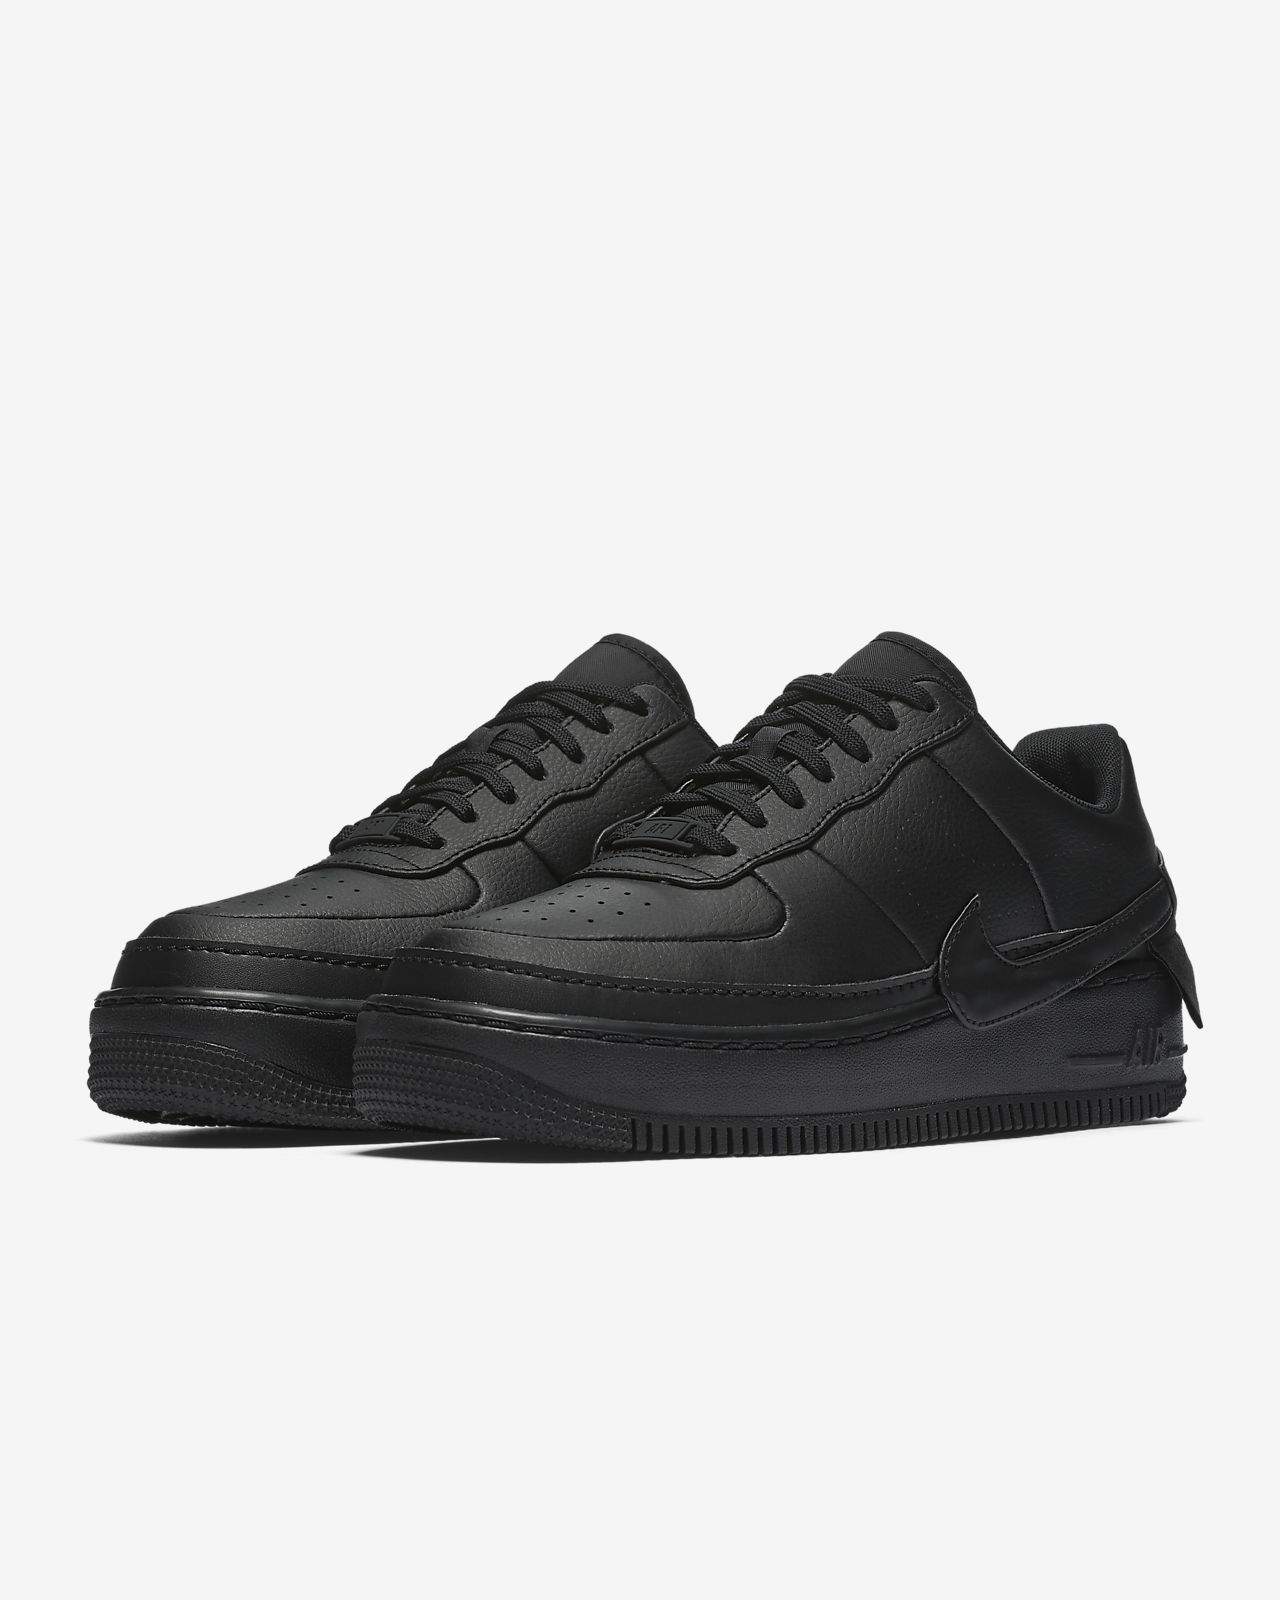 22be6f287a0 Chaussure Nike Air Force 1 Jester XX. Nike.com FR